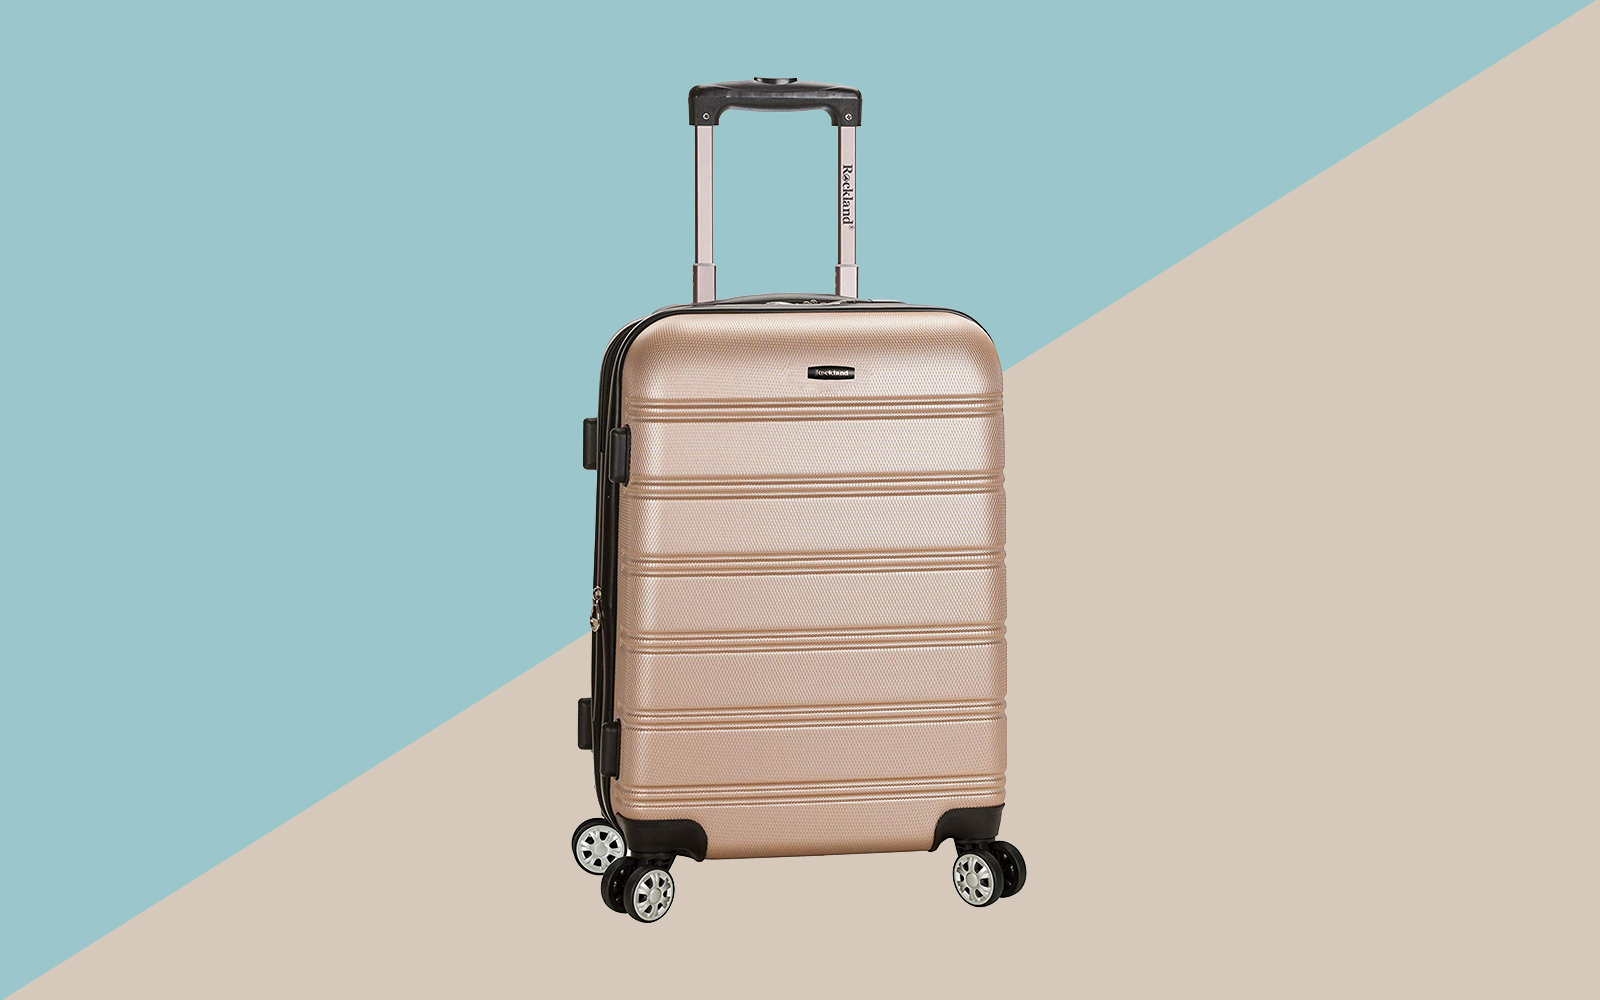 Rockland Luggage Melbourne 20 Inch Expandable Carry On, Champagne Tout